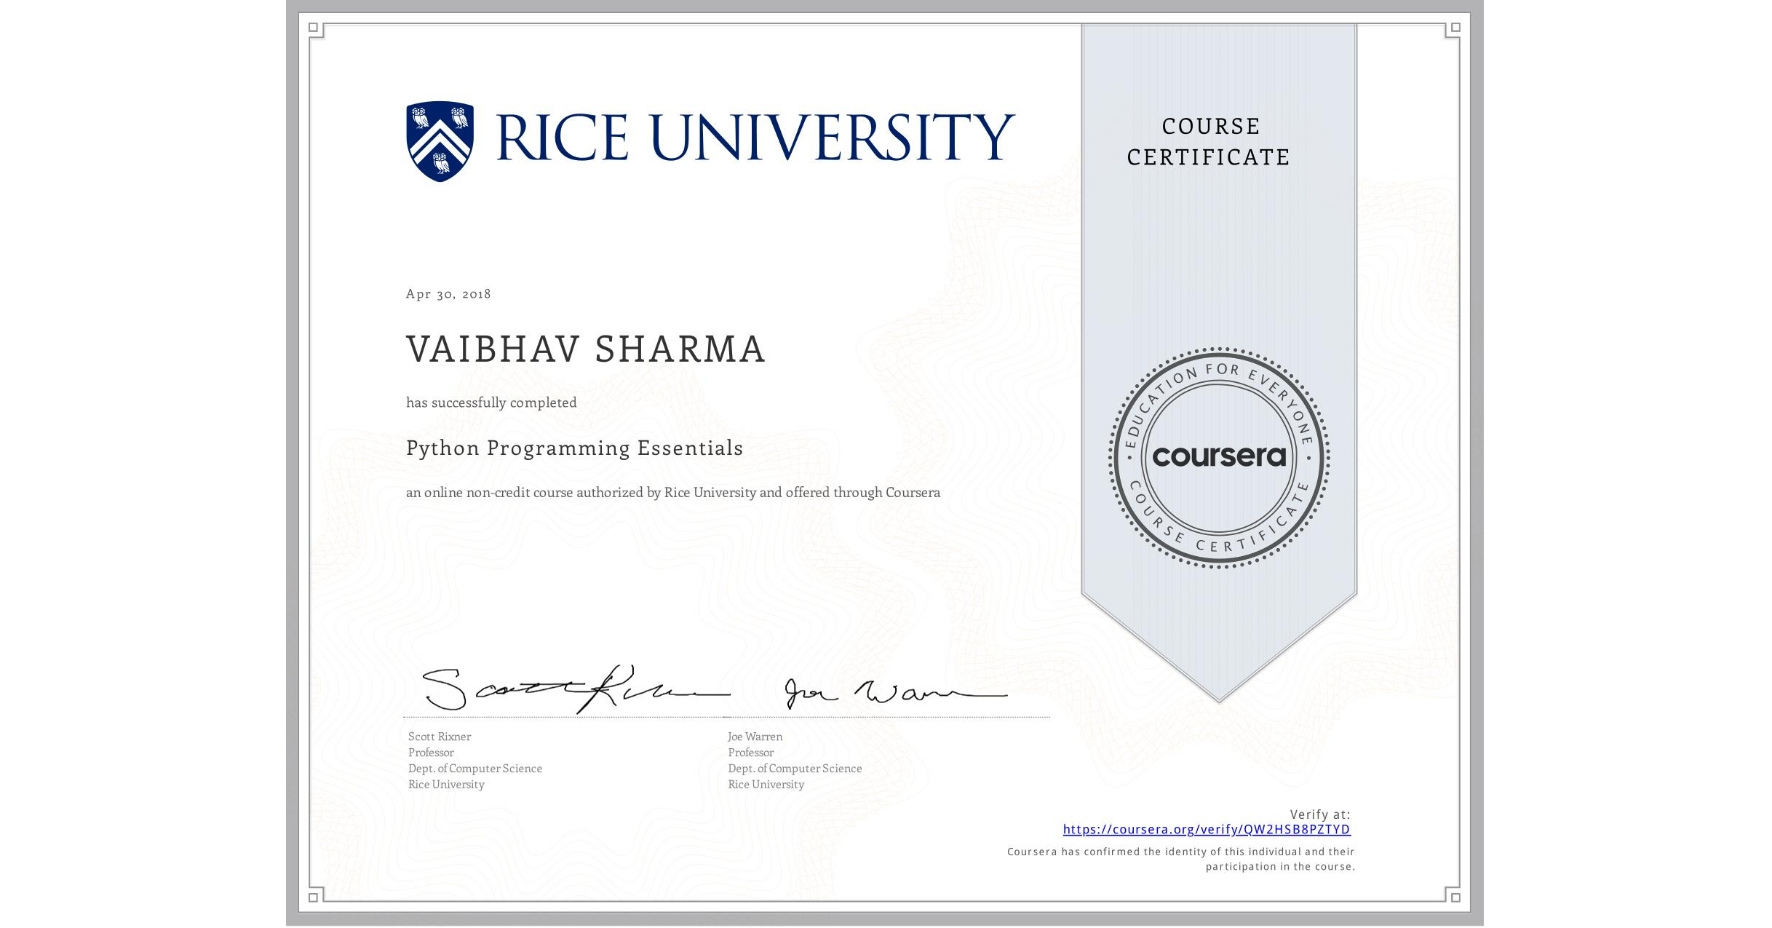 View certificate for VAIBHAV SHARMA, Python Programming Essentials, an online non-credit course authorized by Rice University and offered through Coursera